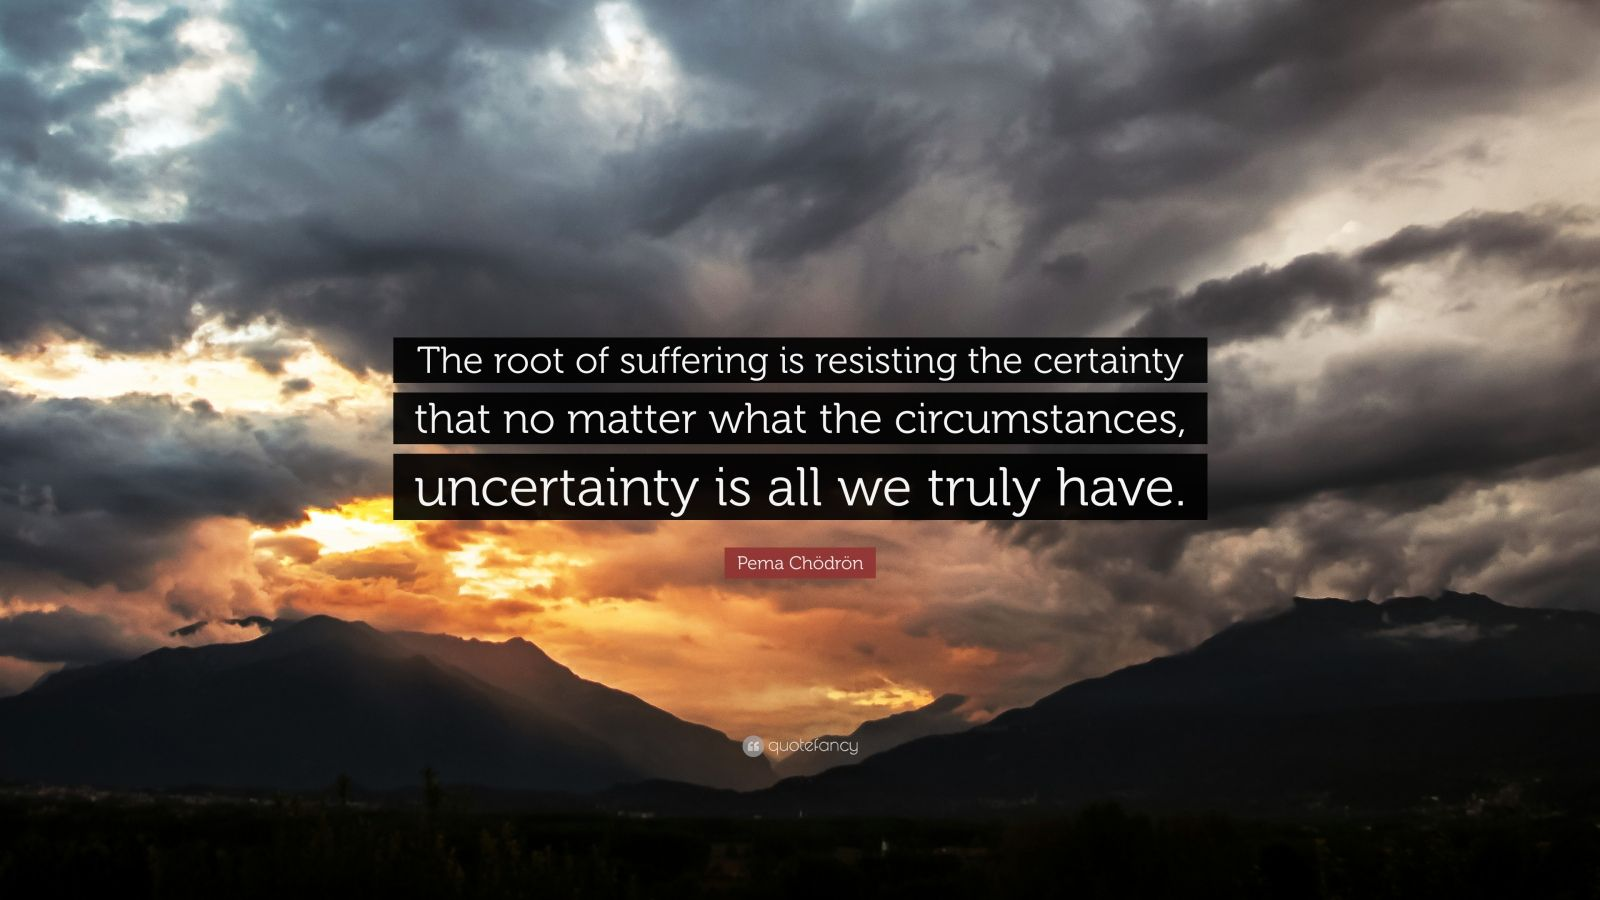 """Pema Chödrön Quote: """"The root of suffering is resisting the certainty that no matter what the circumstances, uncertainty is all we truly have."""""""